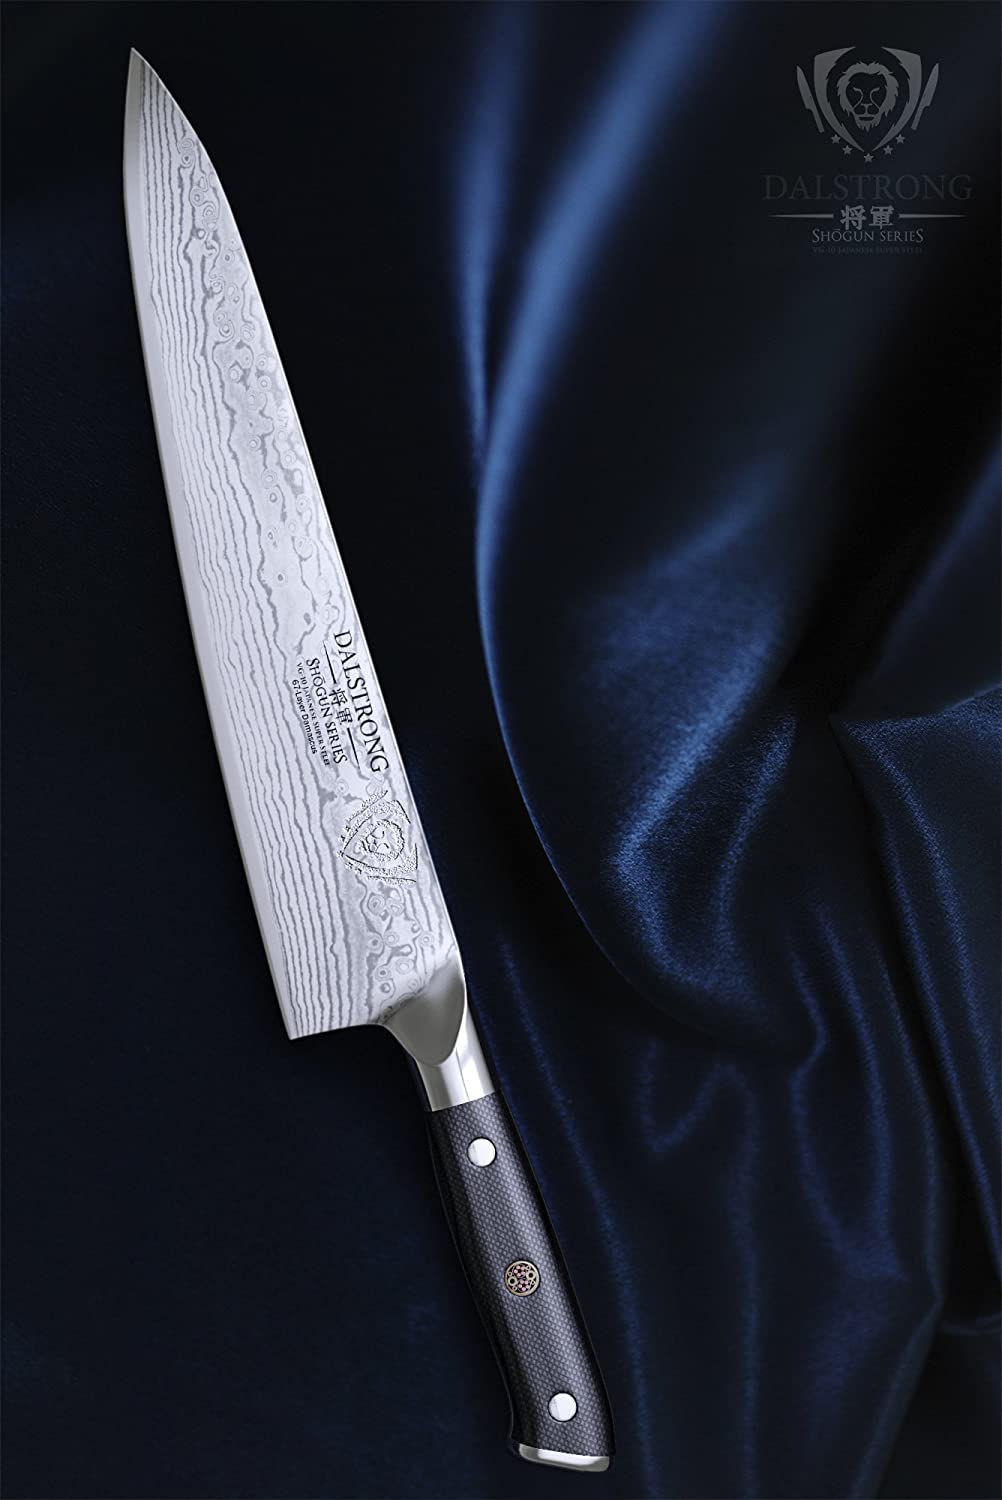 dalstrong chef knife shogun series gyuto vg10 240mm 9 5